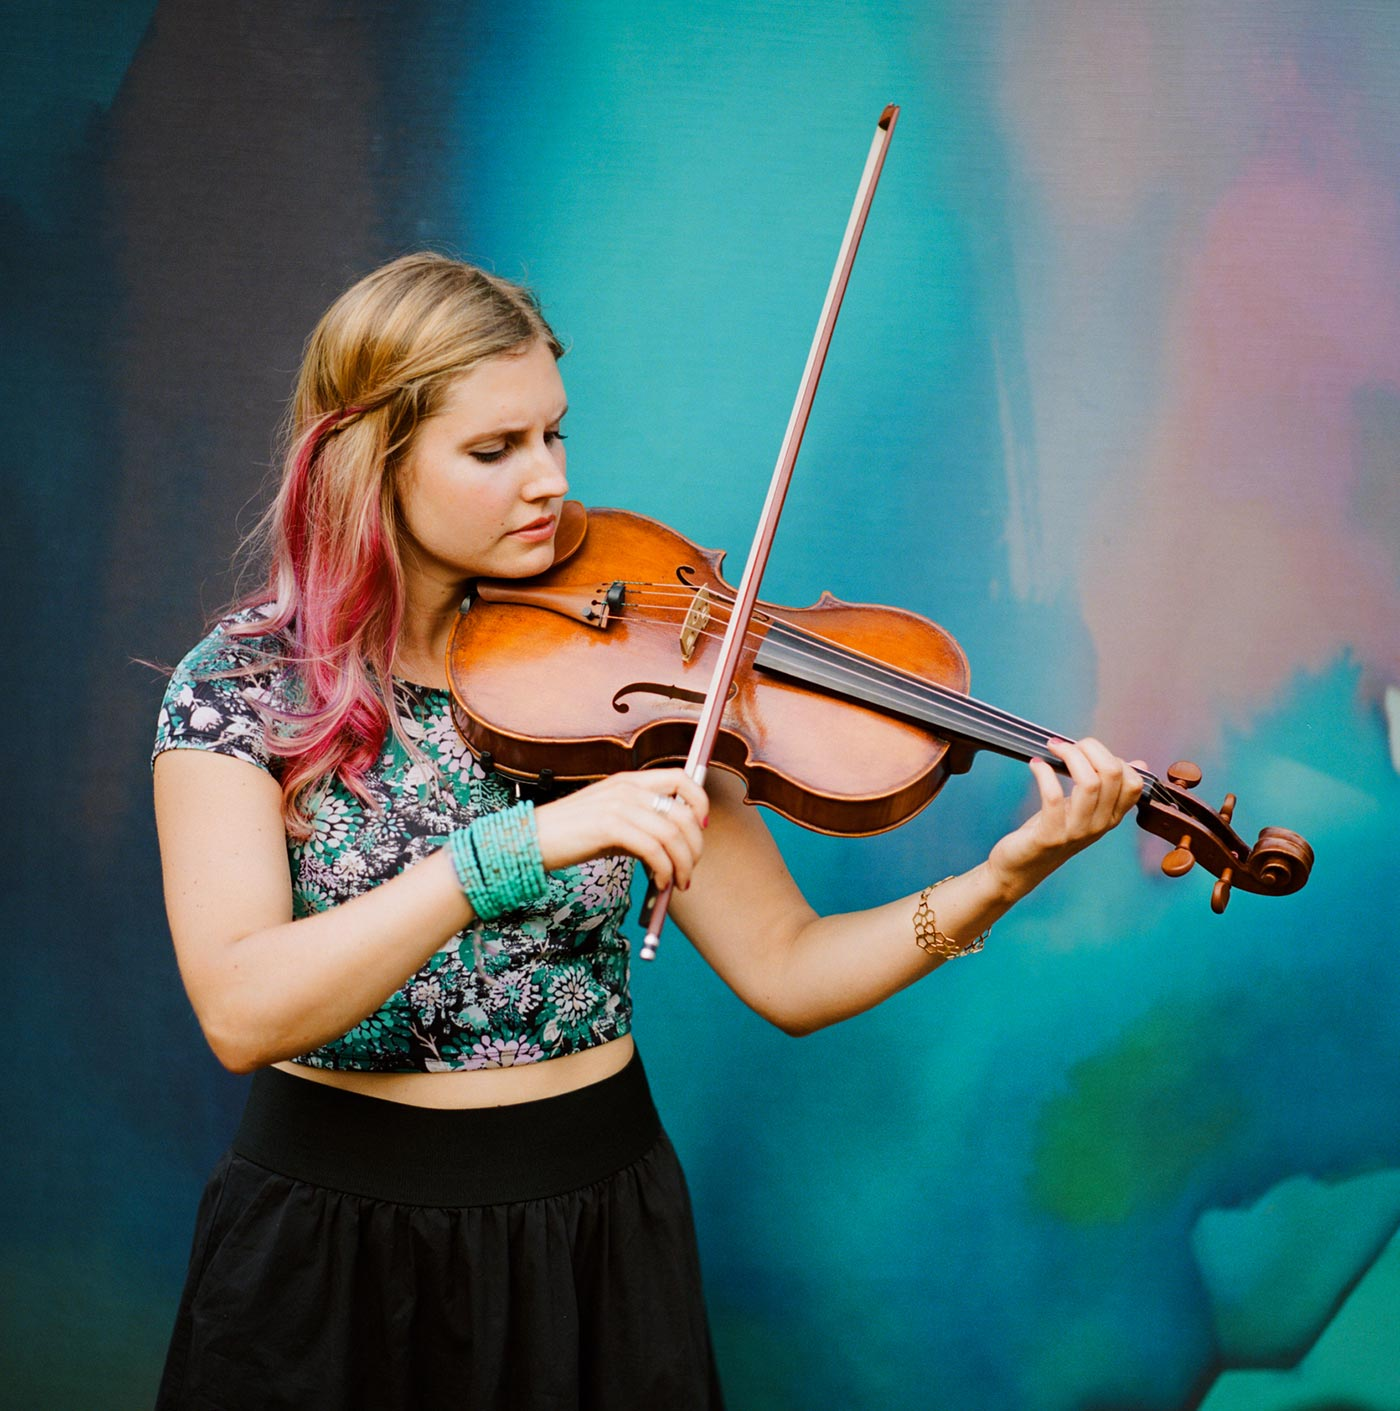 Rachel Nesvig playing viola in front of a colorful backdrop